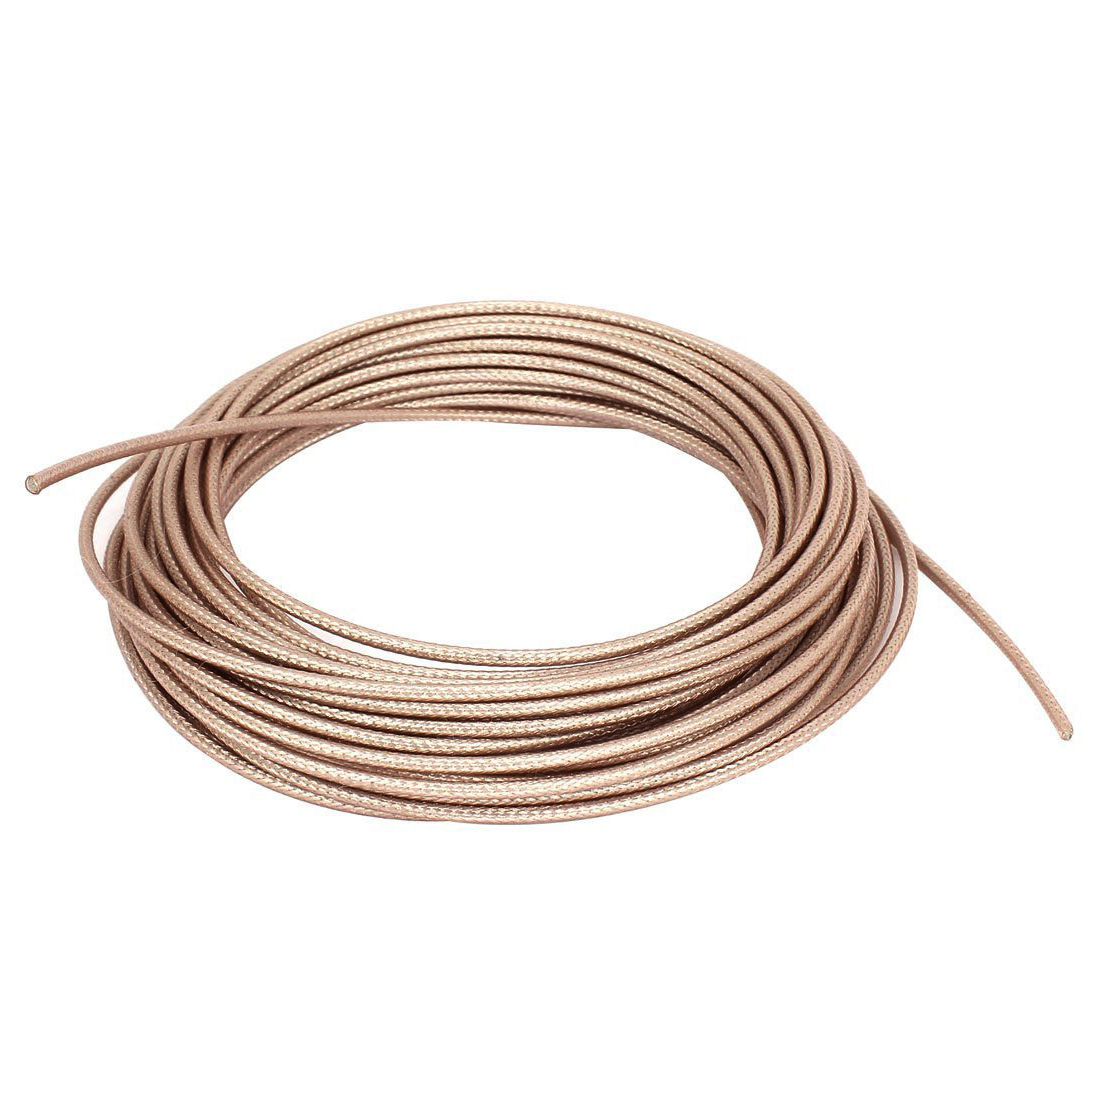 RG316 Coax Coaxial Cable Lead Low Loss RF Connector Wire 10M Long<br><br>Aliexpress